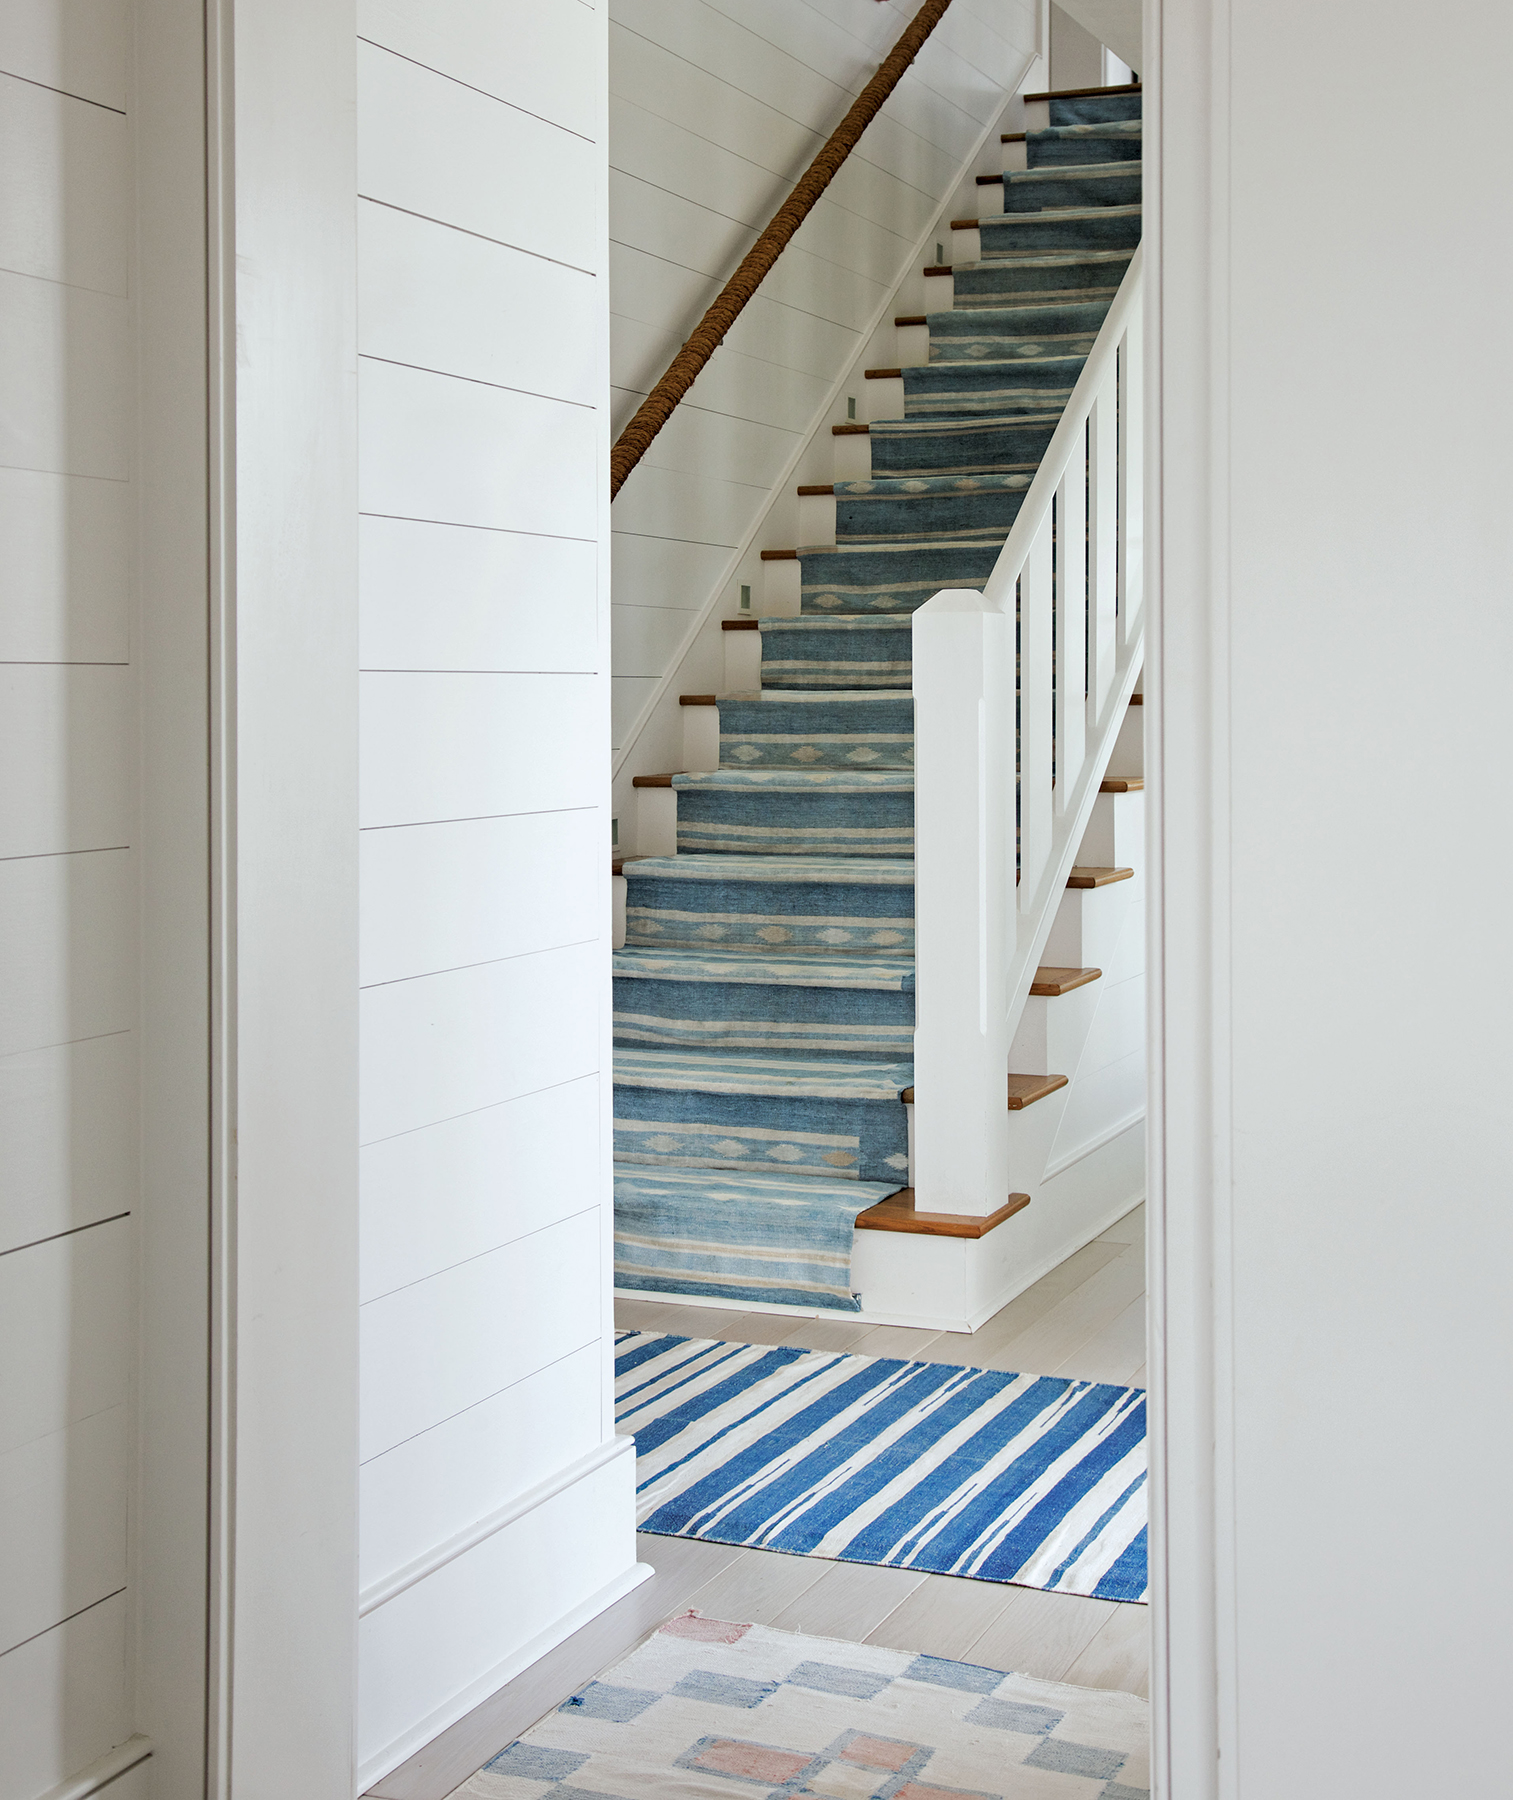 Stairs with blue patterned runner, rug